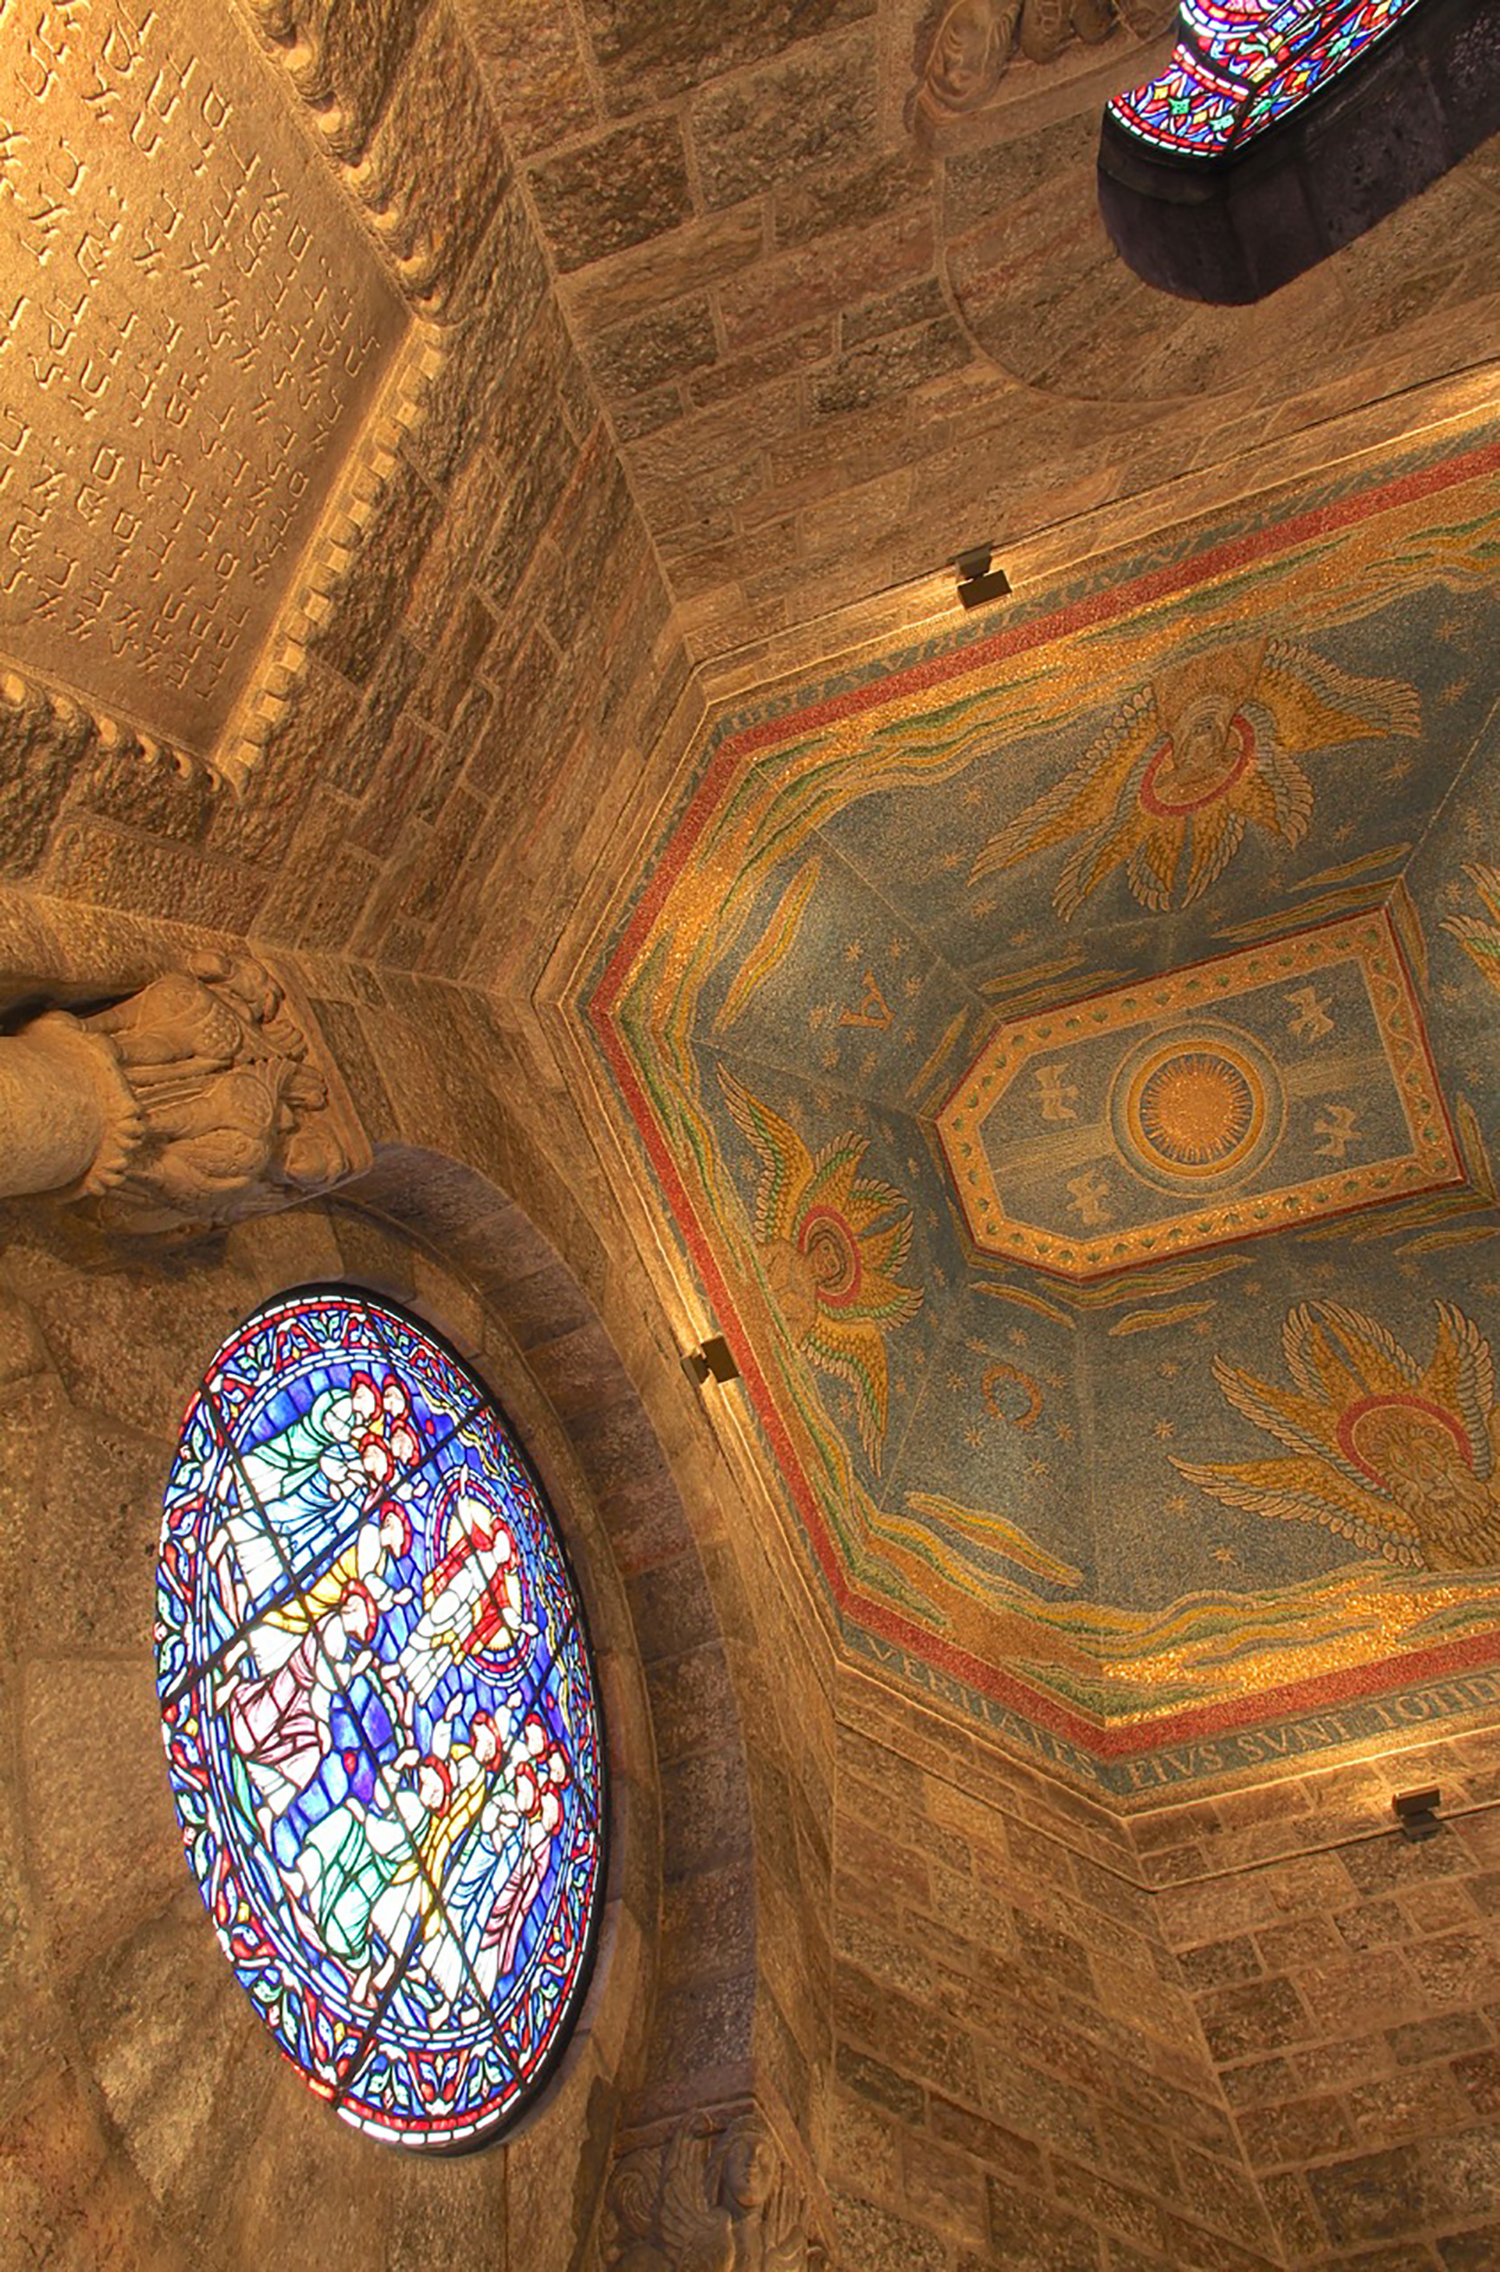 Figure 13: The chapel's ceiling includes a striking depiction in glass mosaic of the four living creatures around the throne of God in heaven (Book of Revelation 4:7). In preparation for this work, Raymond Pitcairn's artists in the Bryn Athyn Studios studied mosaics in some of the finest fifth and sixth century baptistries and churches in Ravenna, Italy.